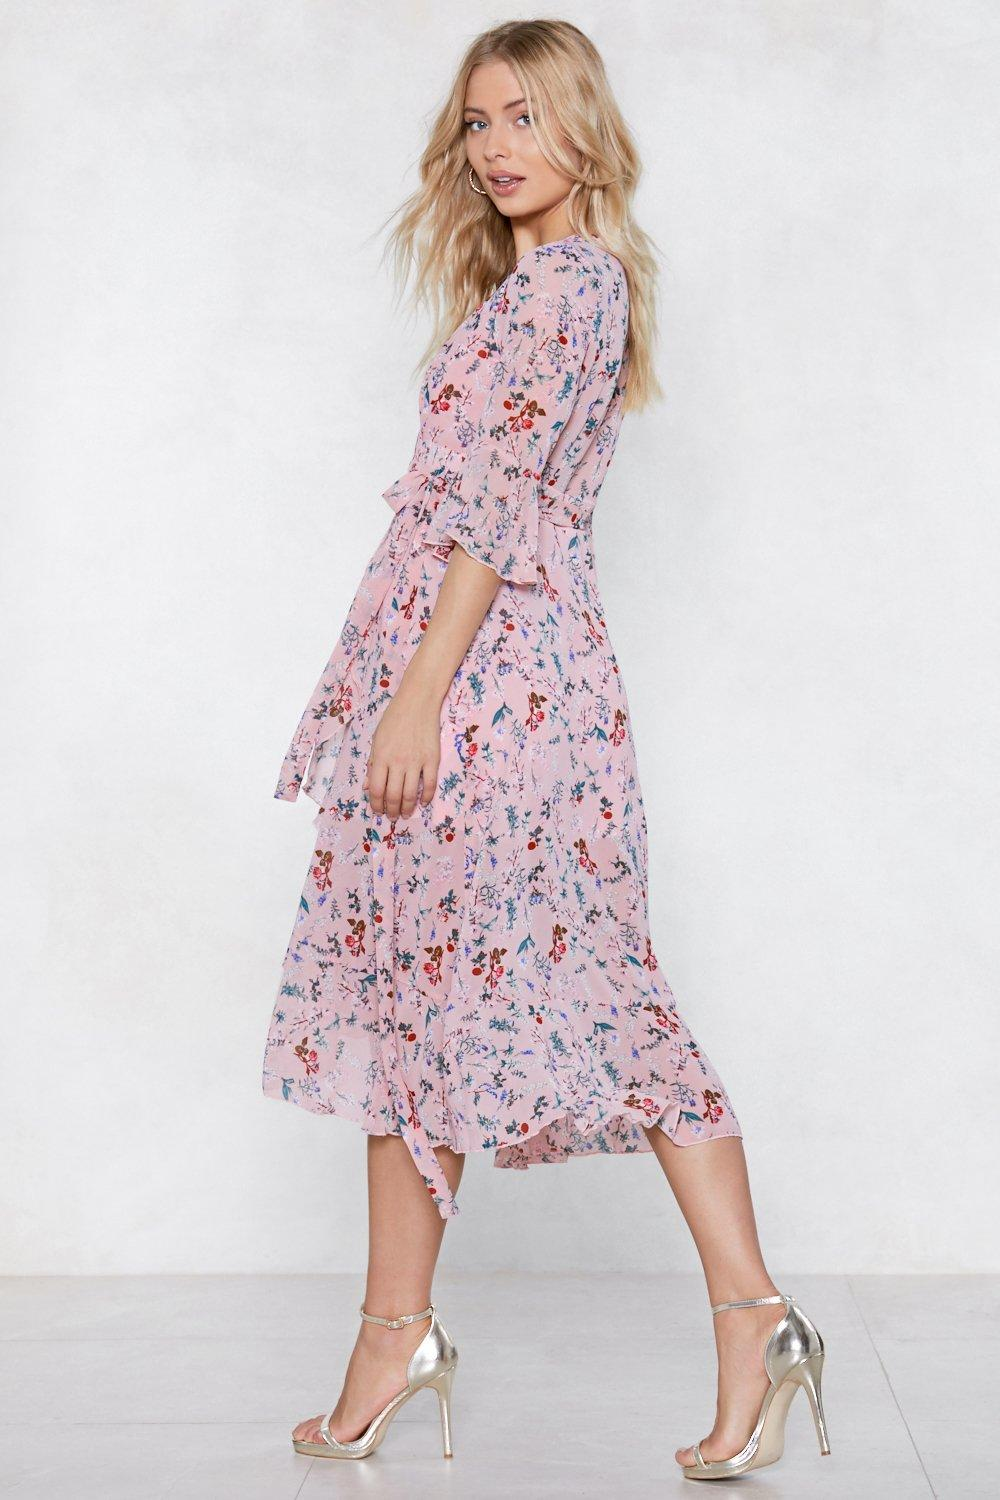 96021e647a4 Womens Blush Spring the Fun Wrap Dress. Hover to zoom